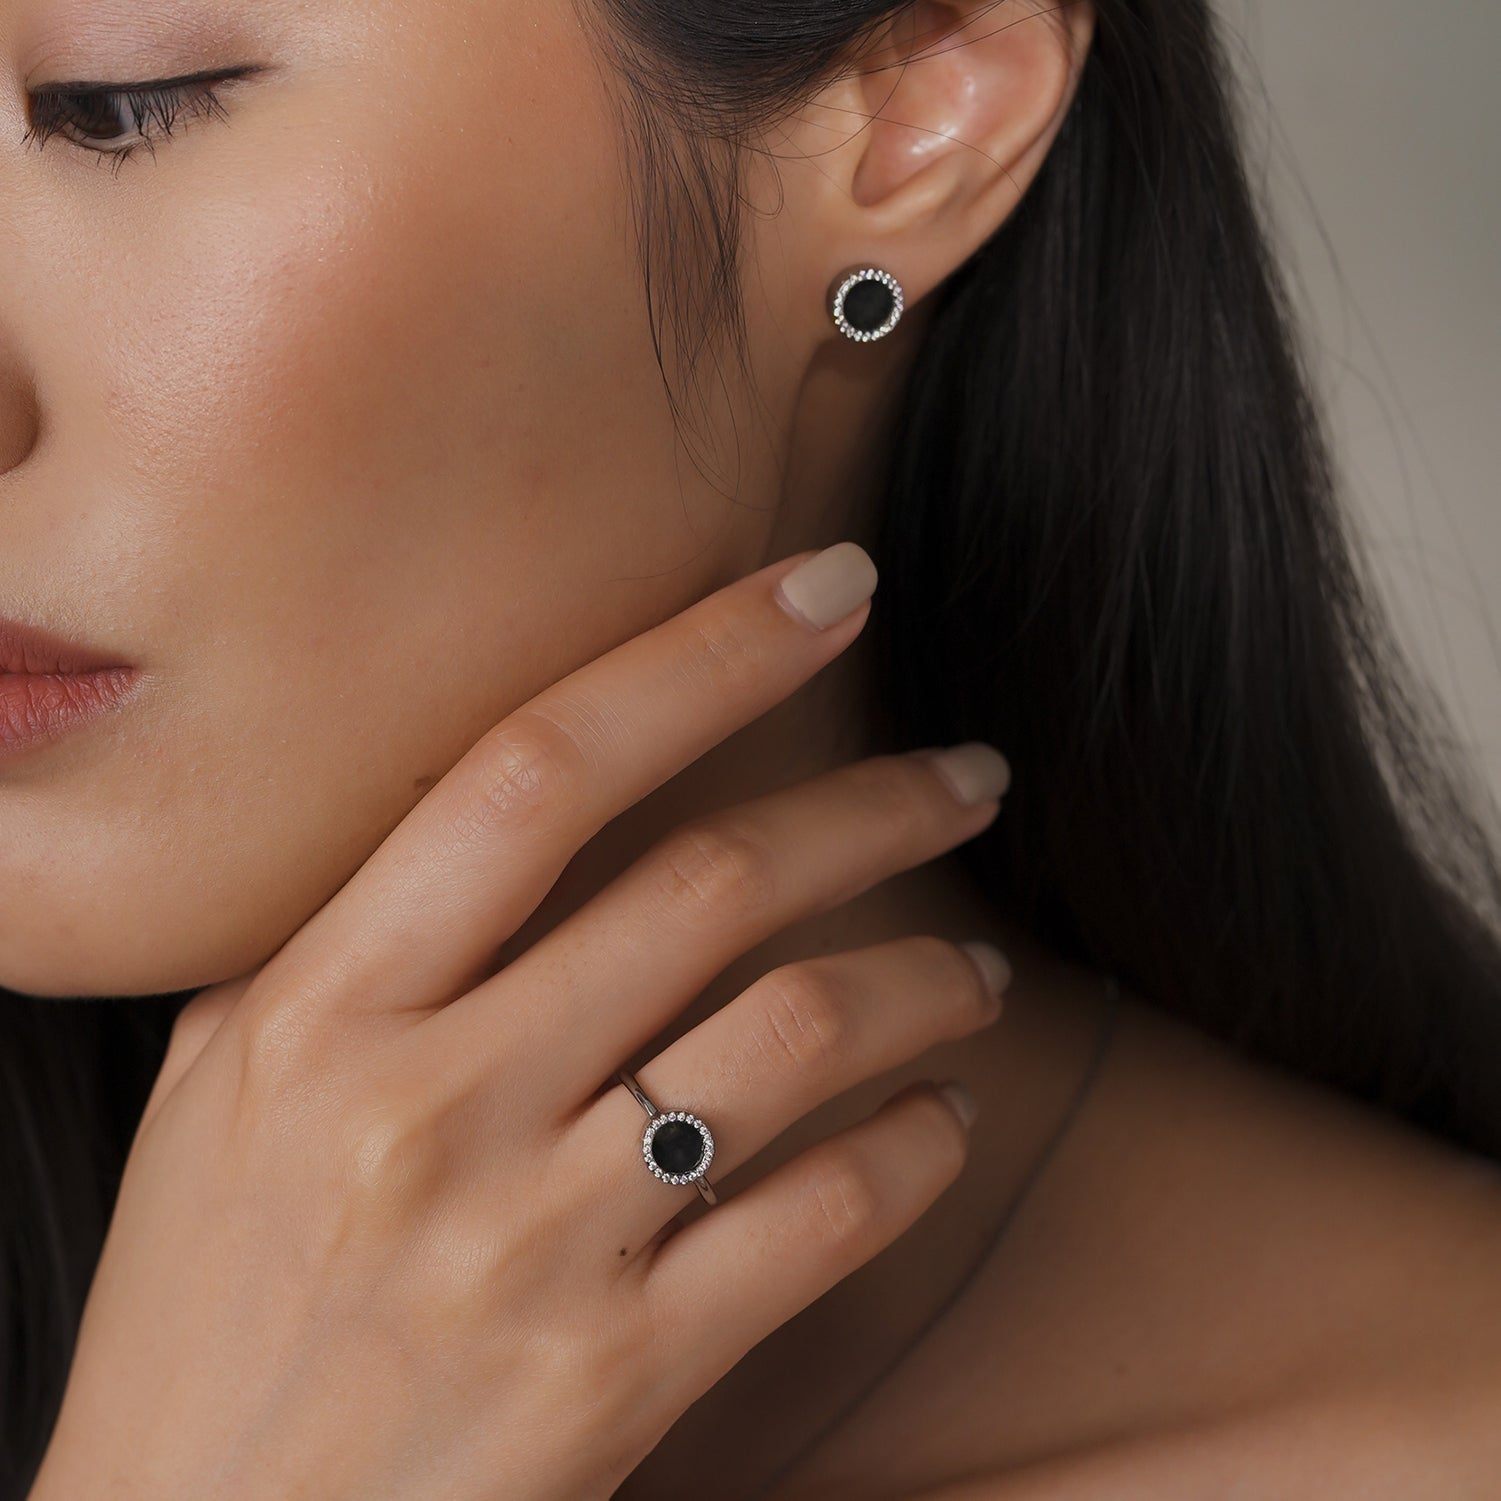 ETERNITY 緣 Earring Studs in Black Jade